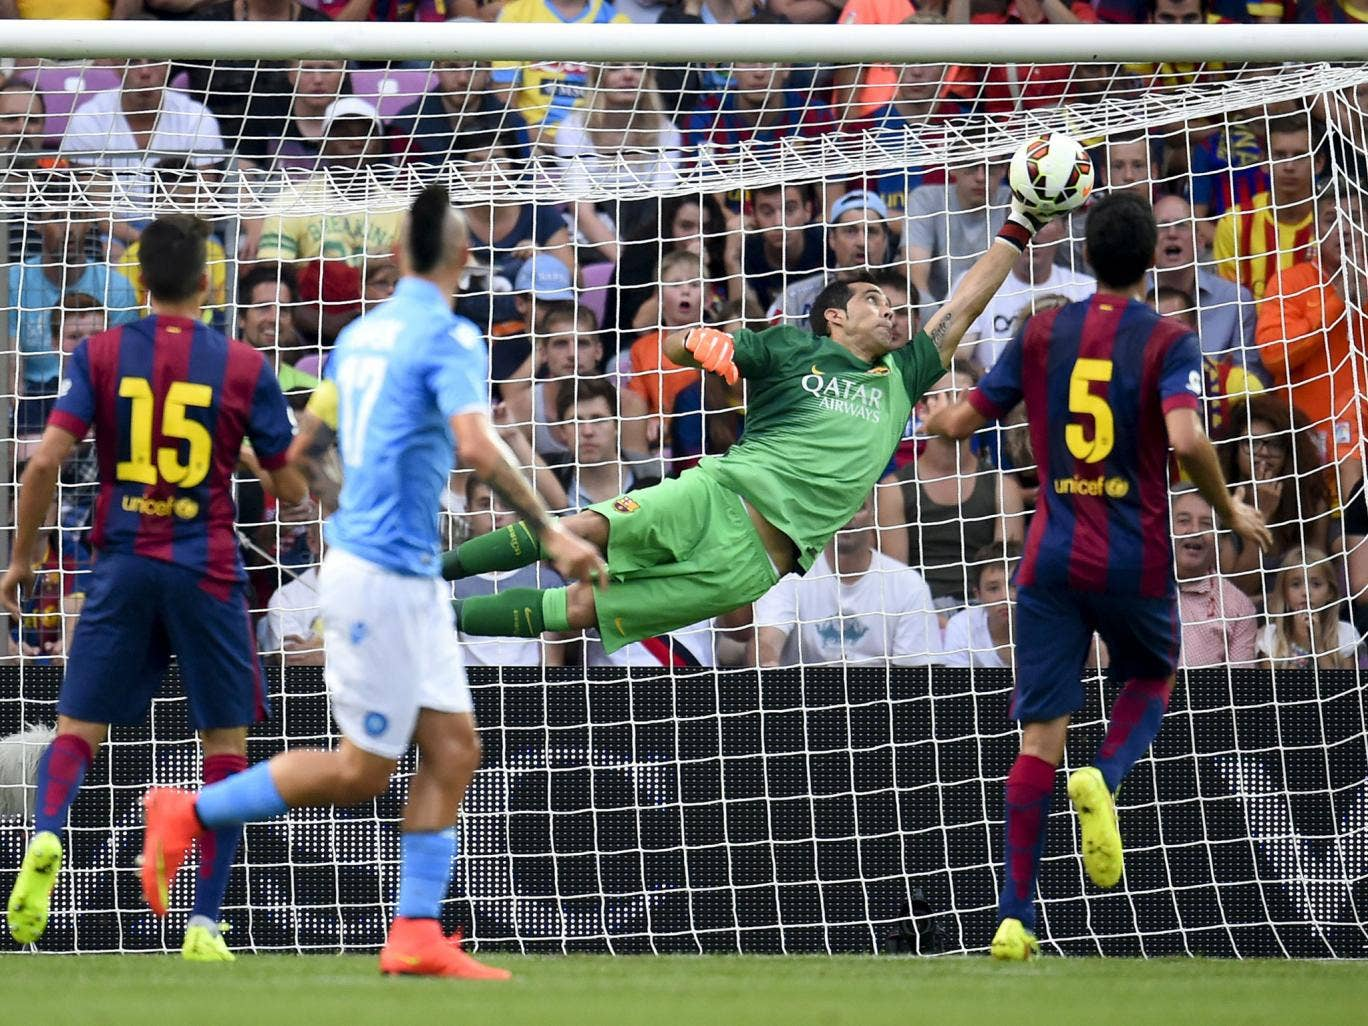 Barcelona keeper Claudio Bravo made one great save but was completely at fault for conceding against Napoli